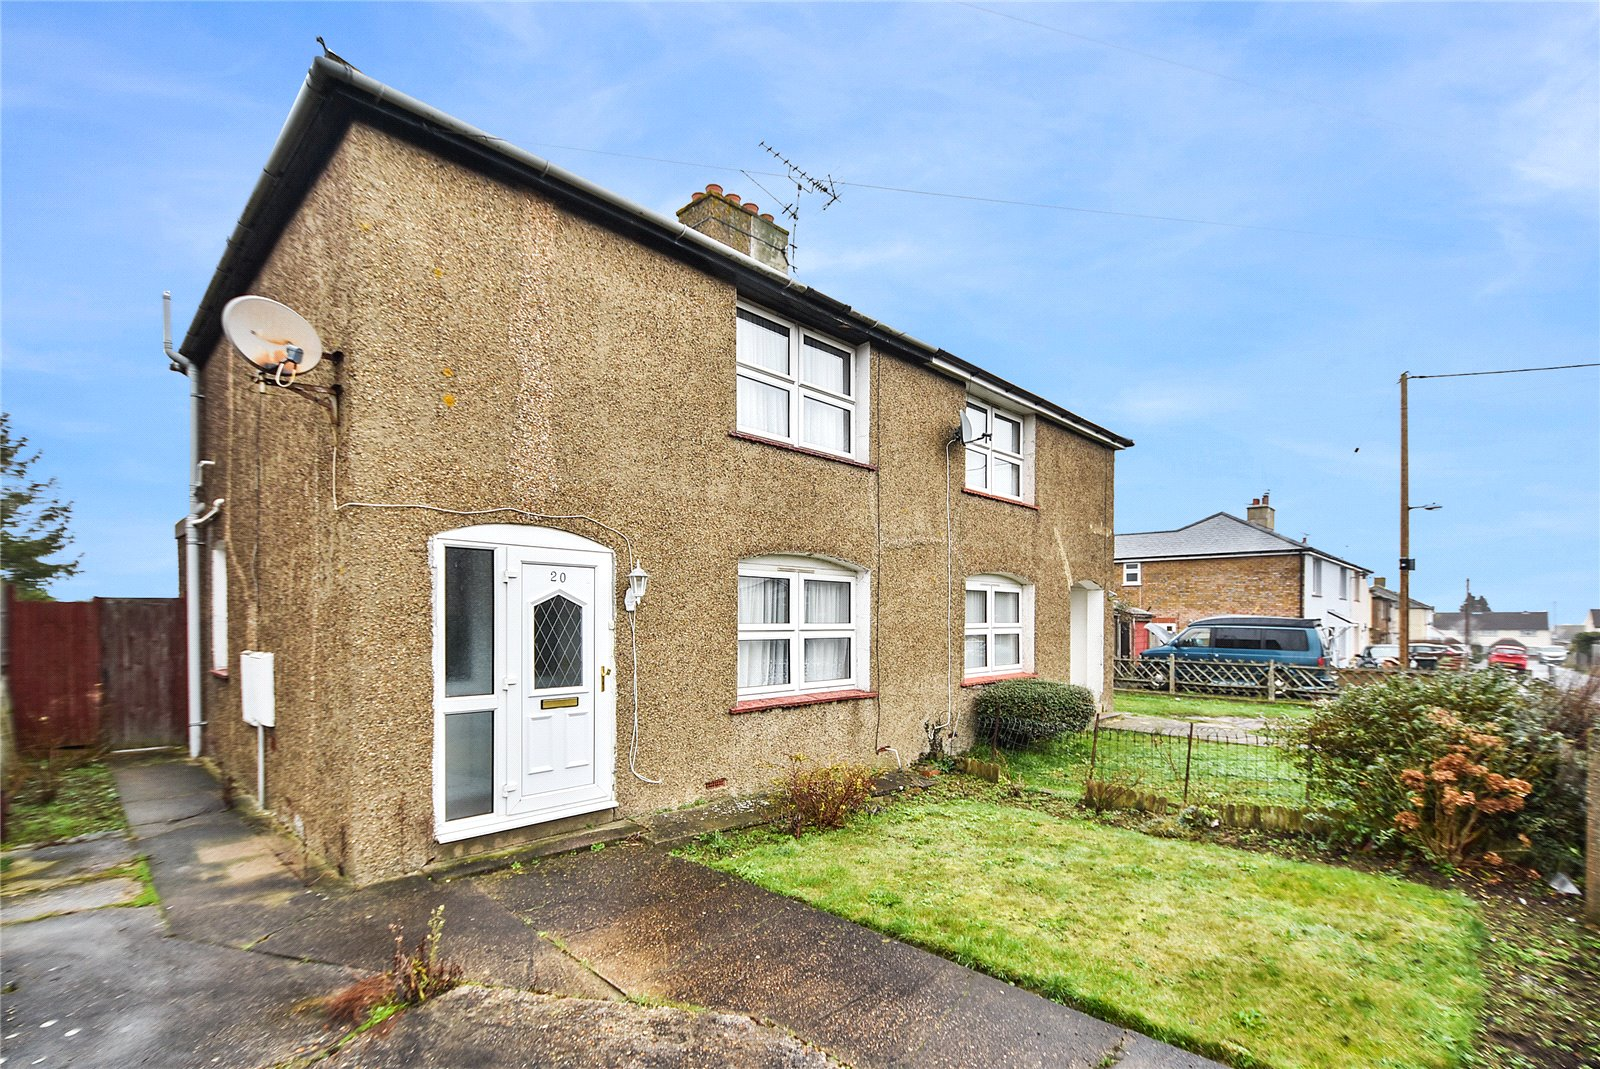 Russell Place, Sutton At Hone, Dartford, Kent, DA4